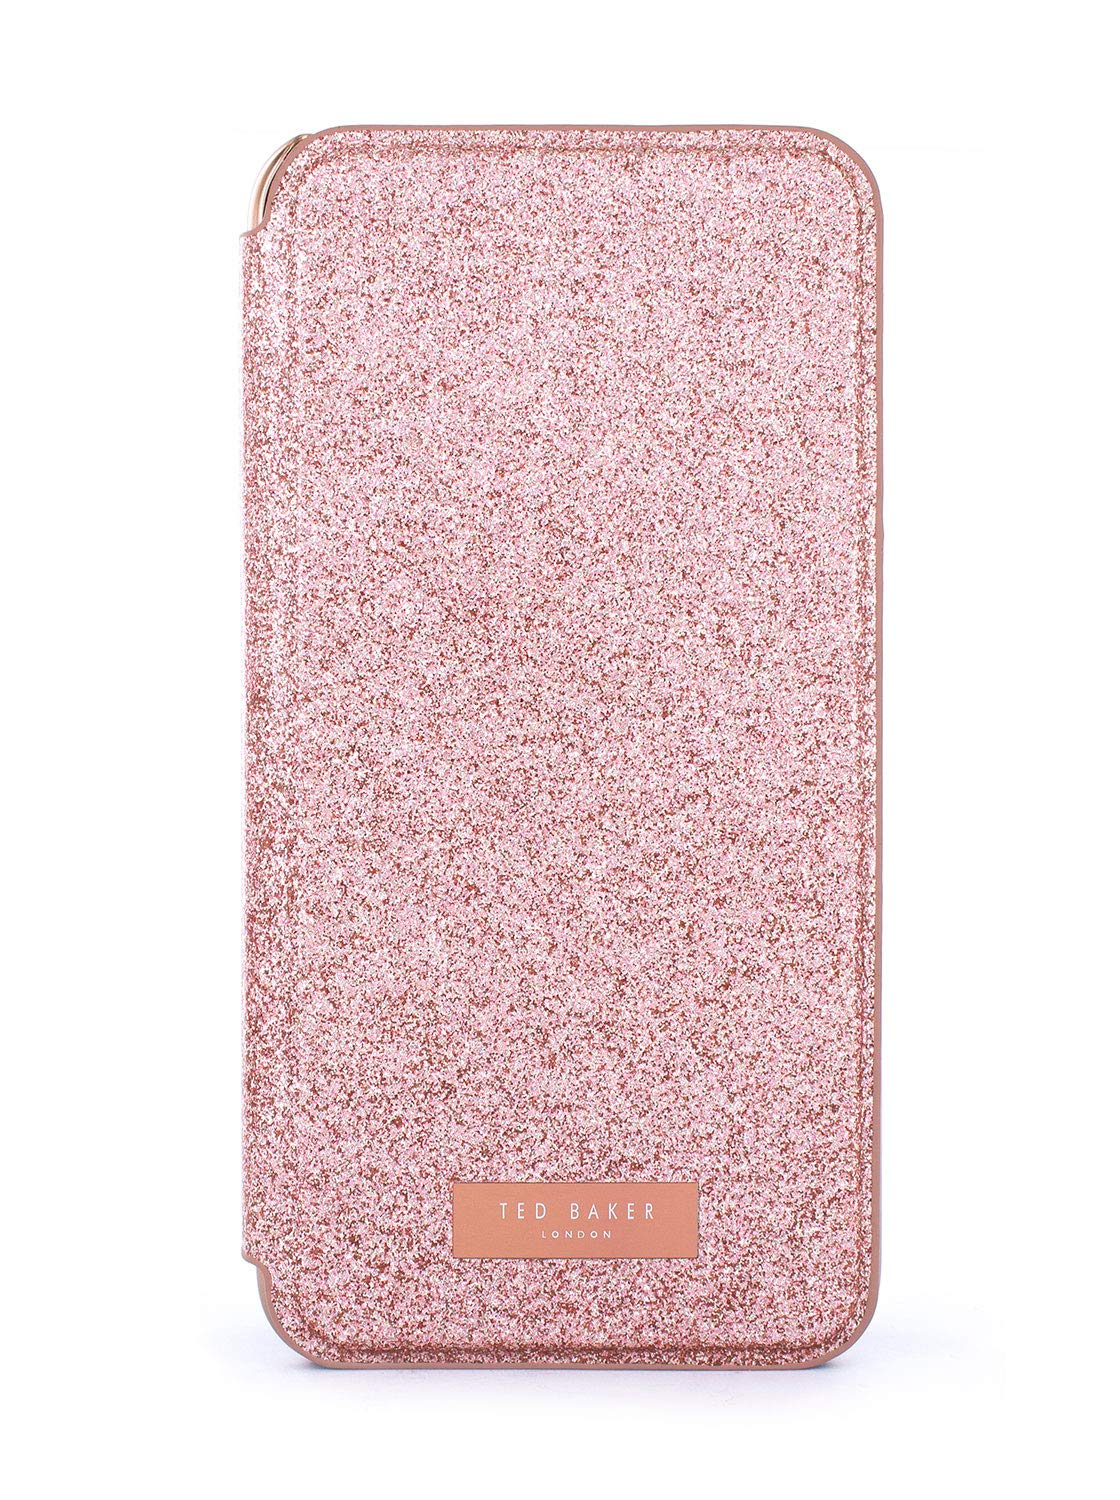 Ted Baker Sparkly Fashion Mirror Folio Case for iPhone XS MAX, Protective Cover iPhone XS MAX for Professional Women/Girls: Amazon.es: Electrónica